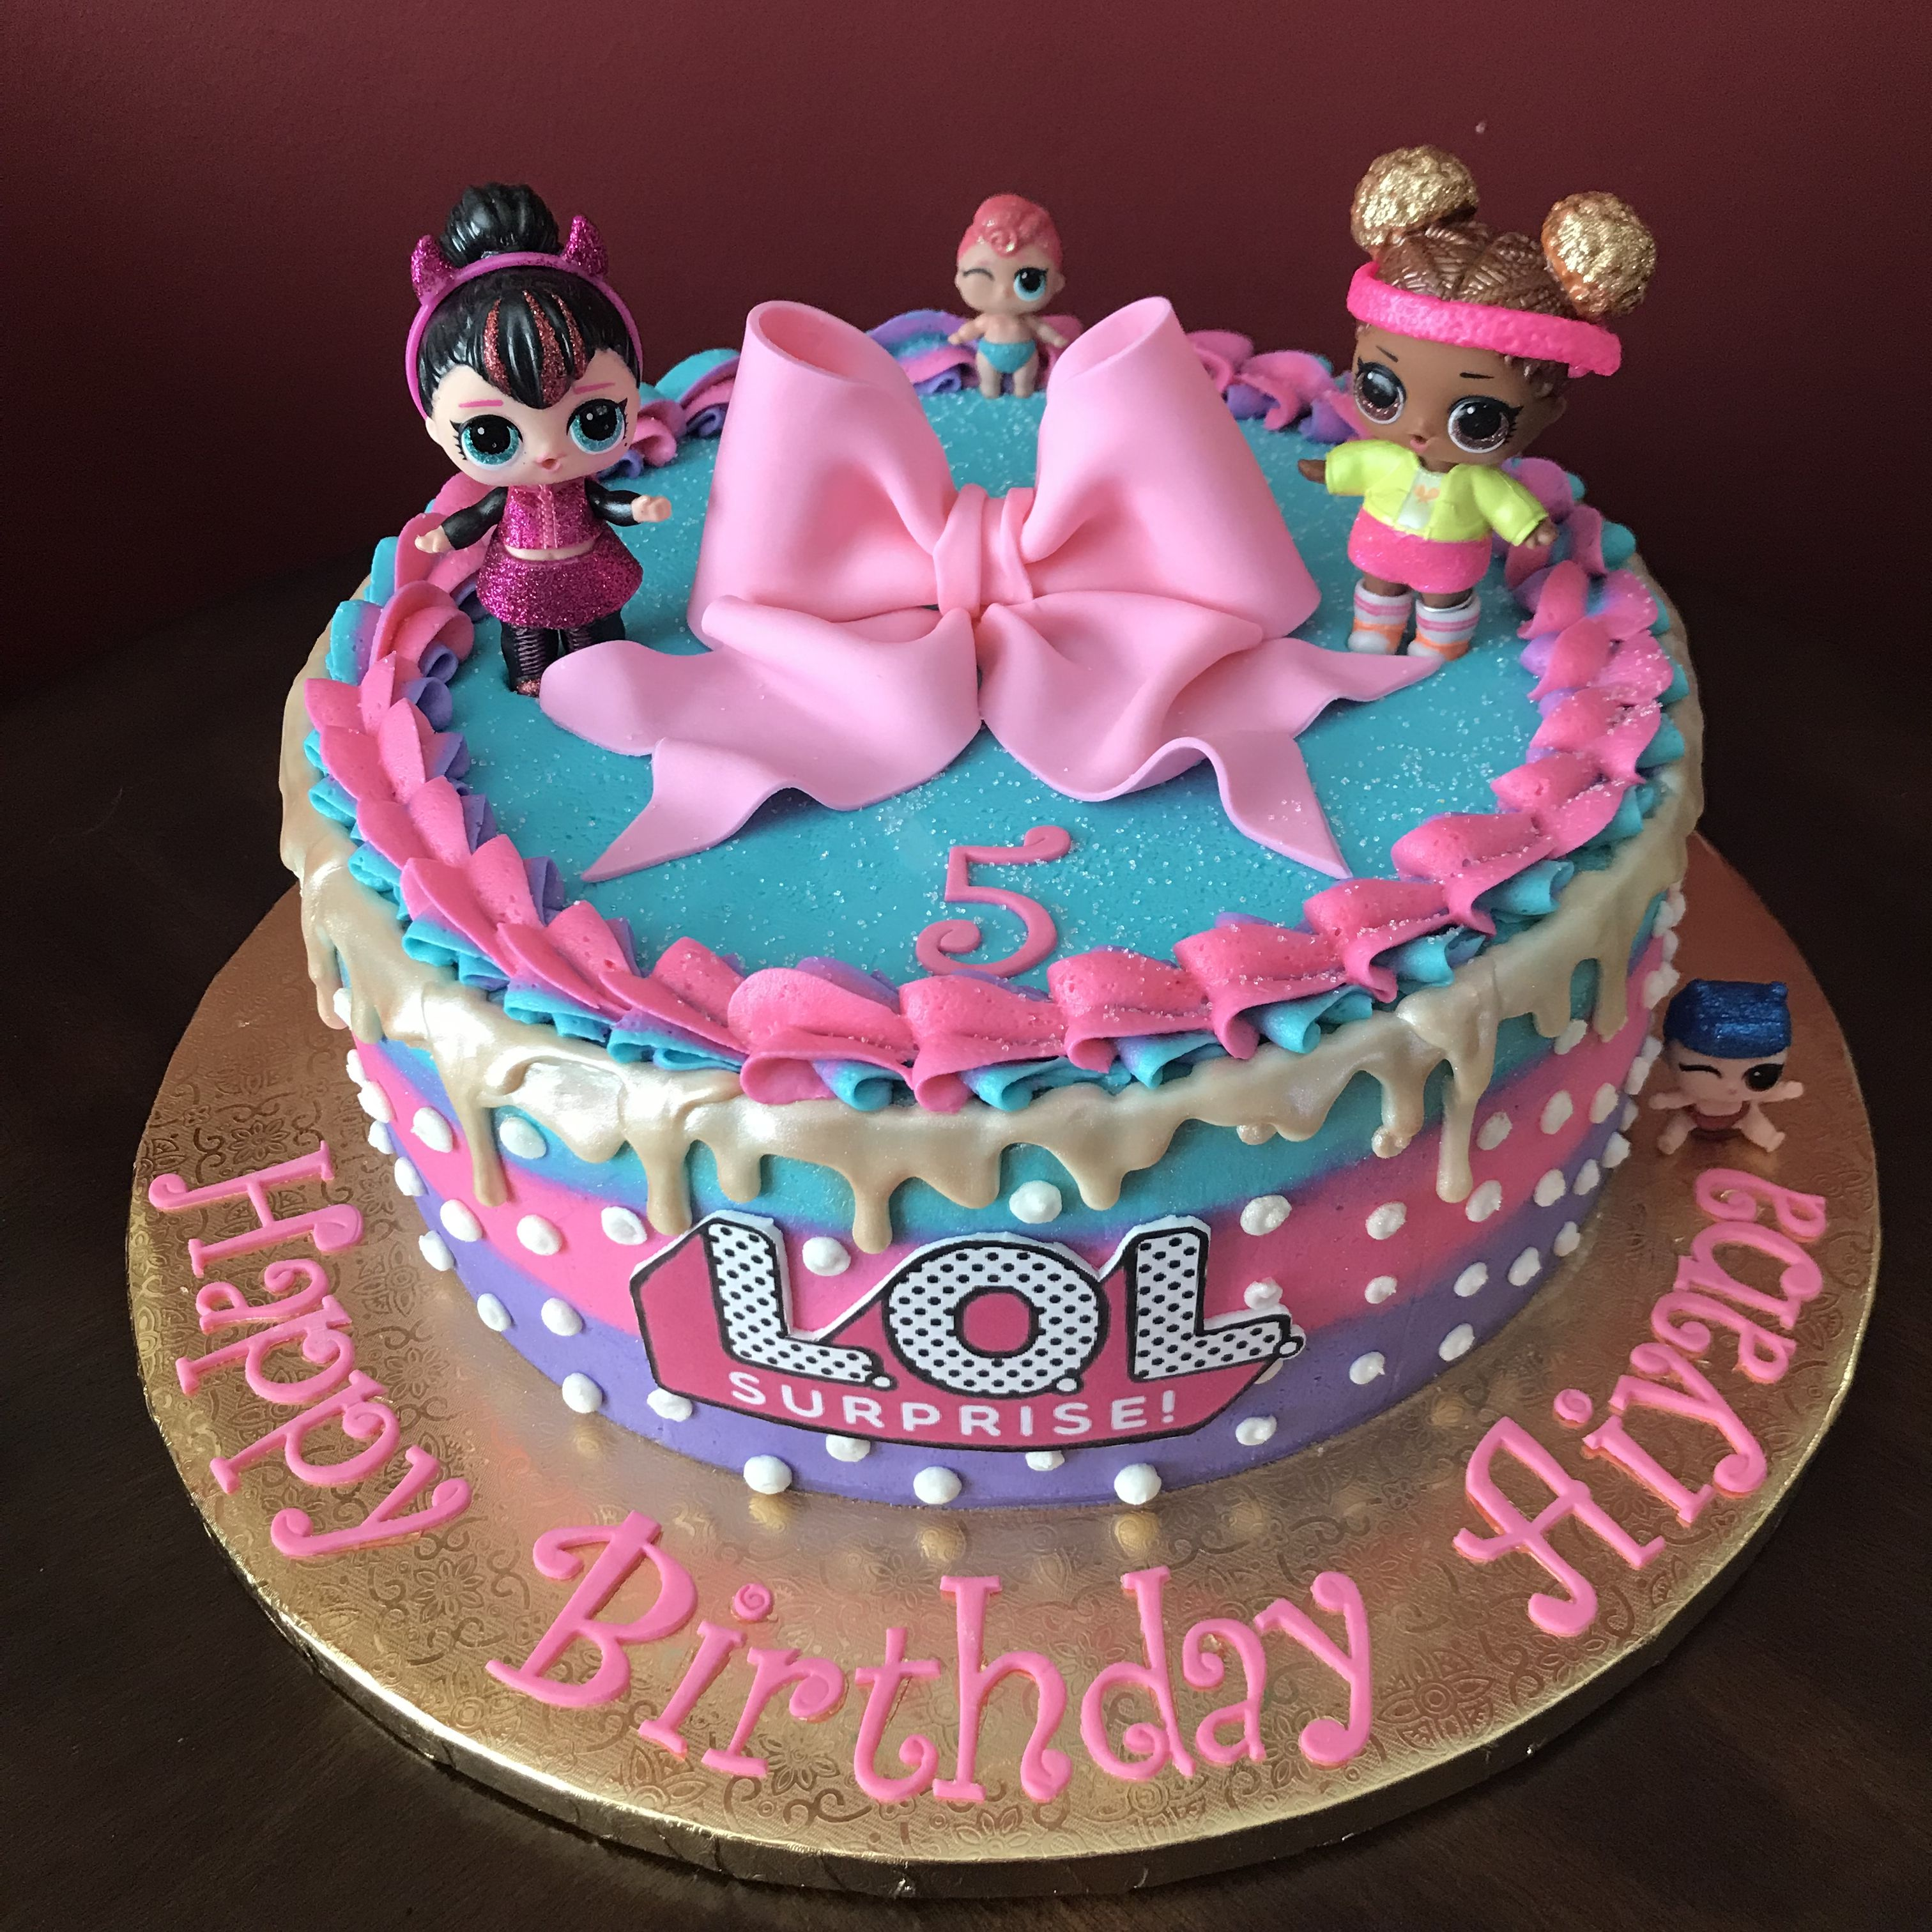 Lol Surprise Birthday Cake With Images Funny Birthday Cakes